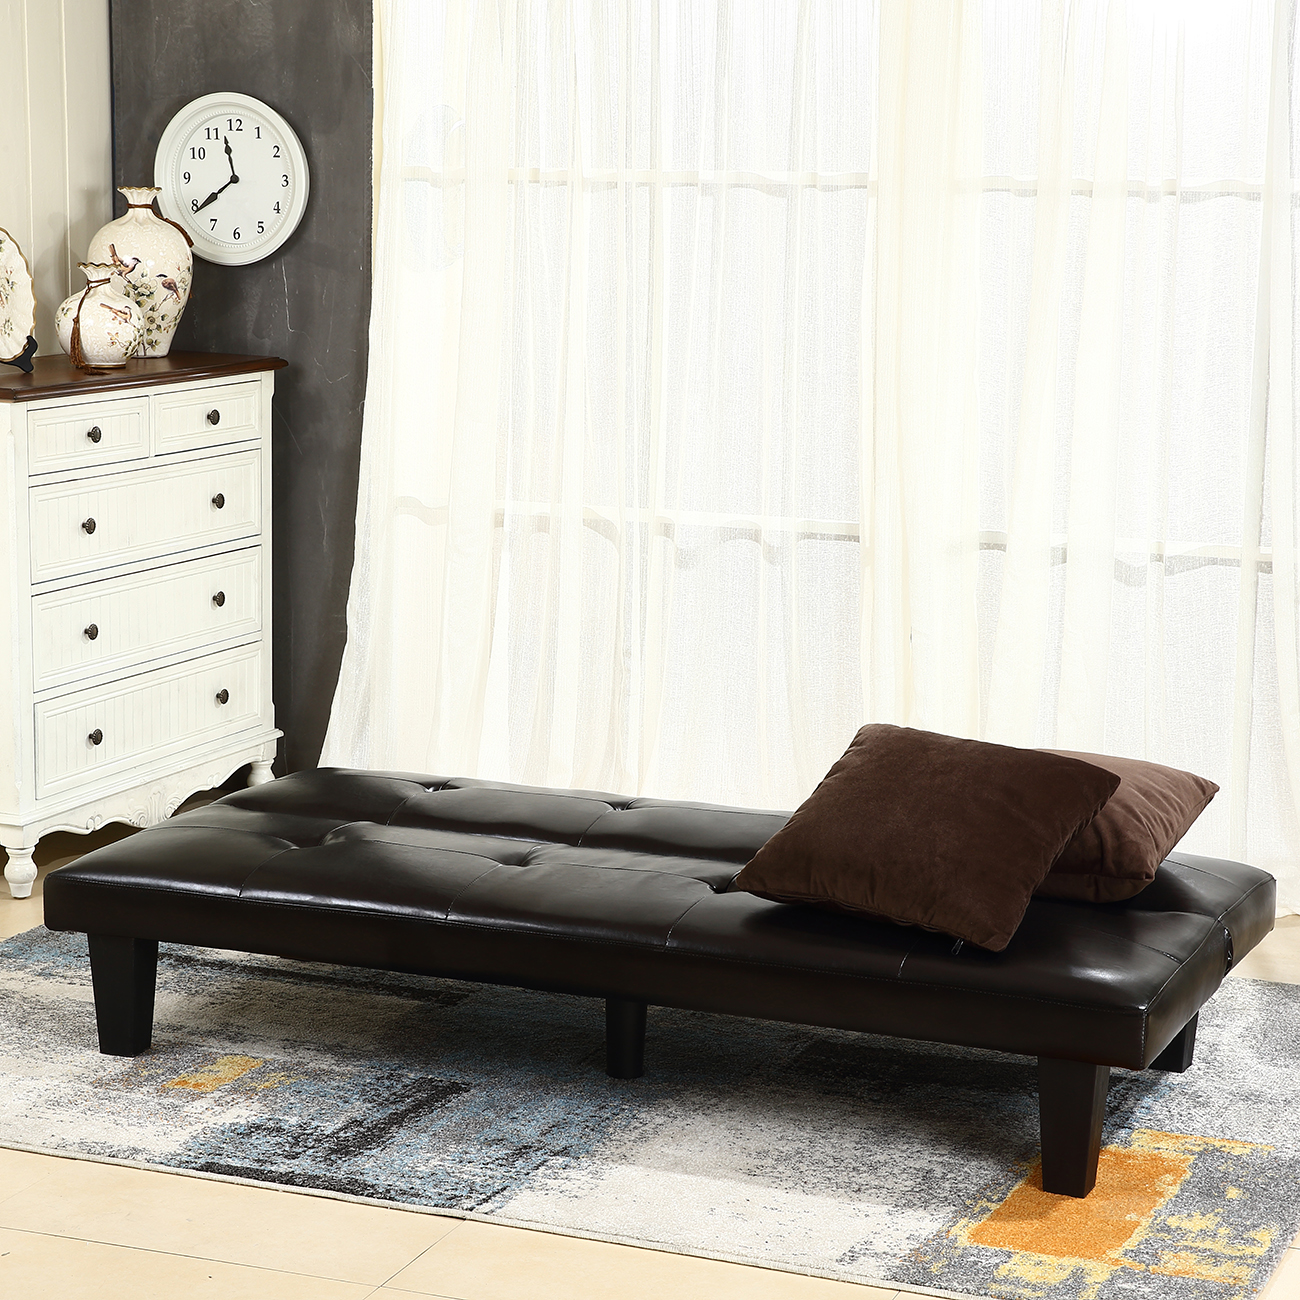 New Futon Sofa Bed Convertible Couch Loveseat Dorm Sleeper Lounge W 2 Pillow